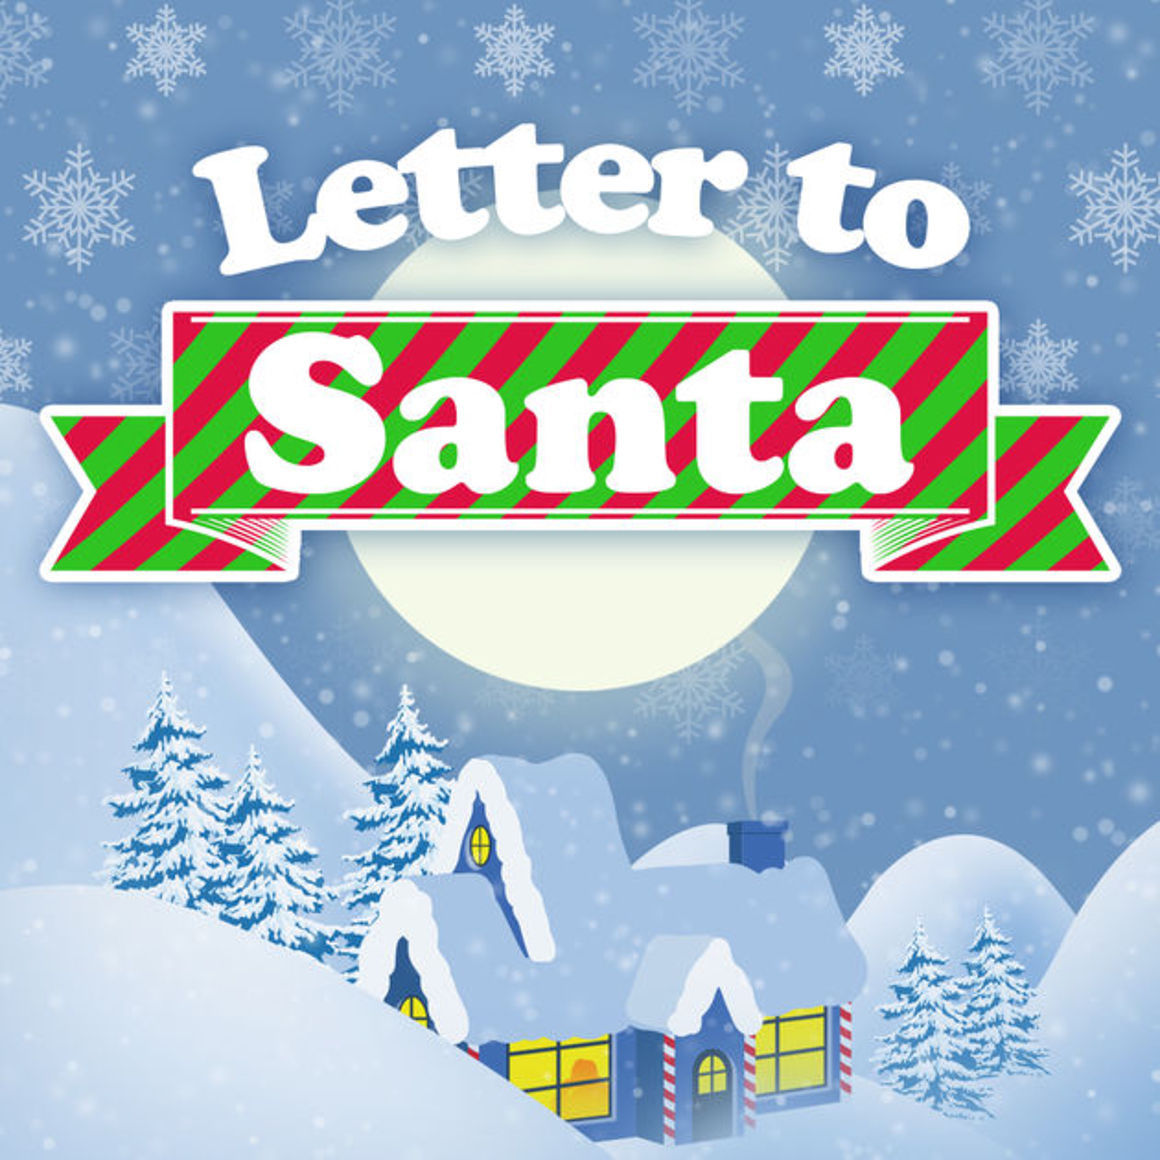 Word Review Letter To Santa  Life  DailyJournalCom